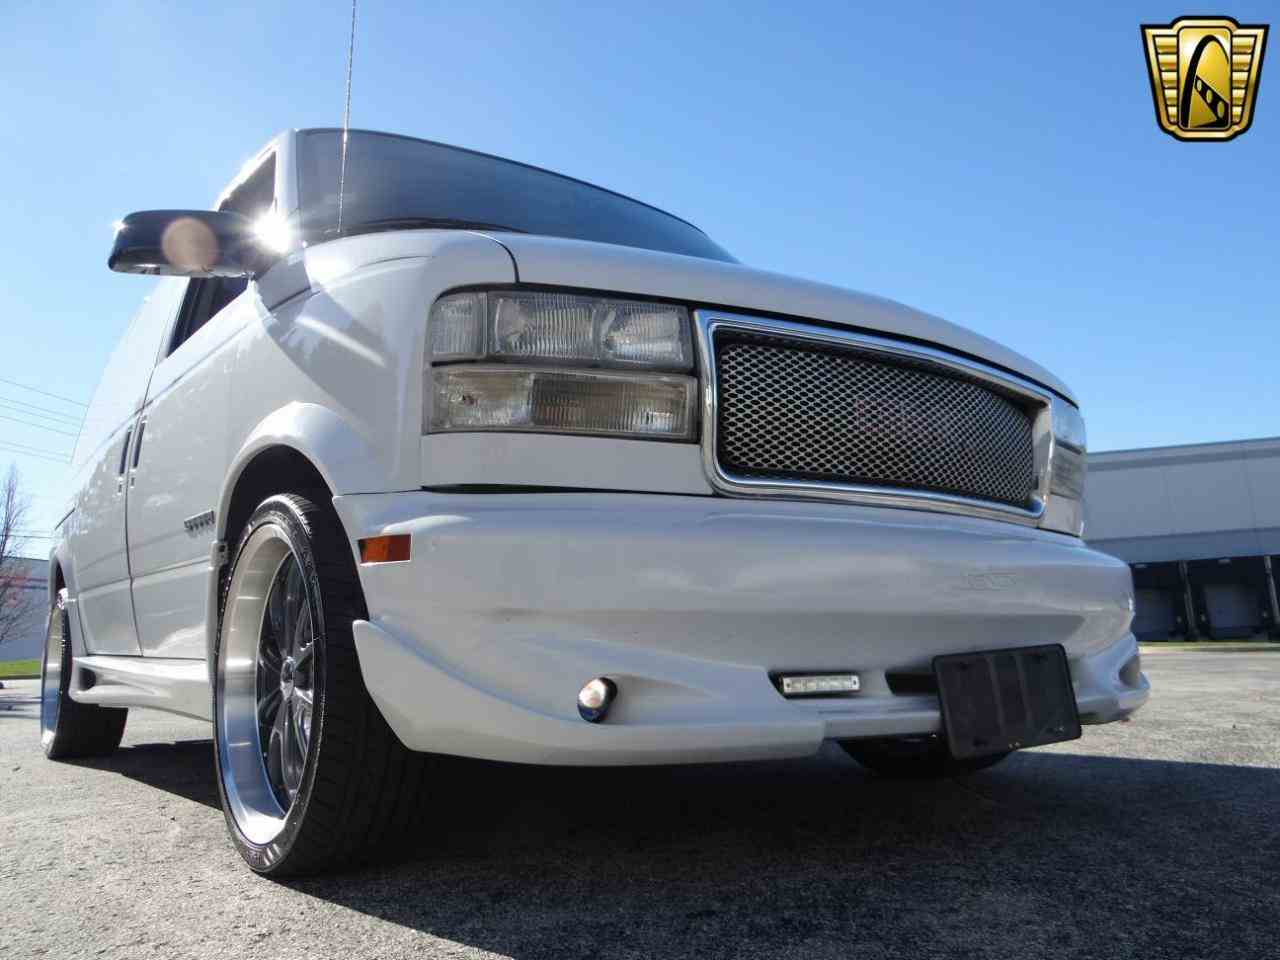 Large Picture of '98 GMC Safari - $10,595.00 Offered by Gateway Classic Cars - Chicago - KF2Q